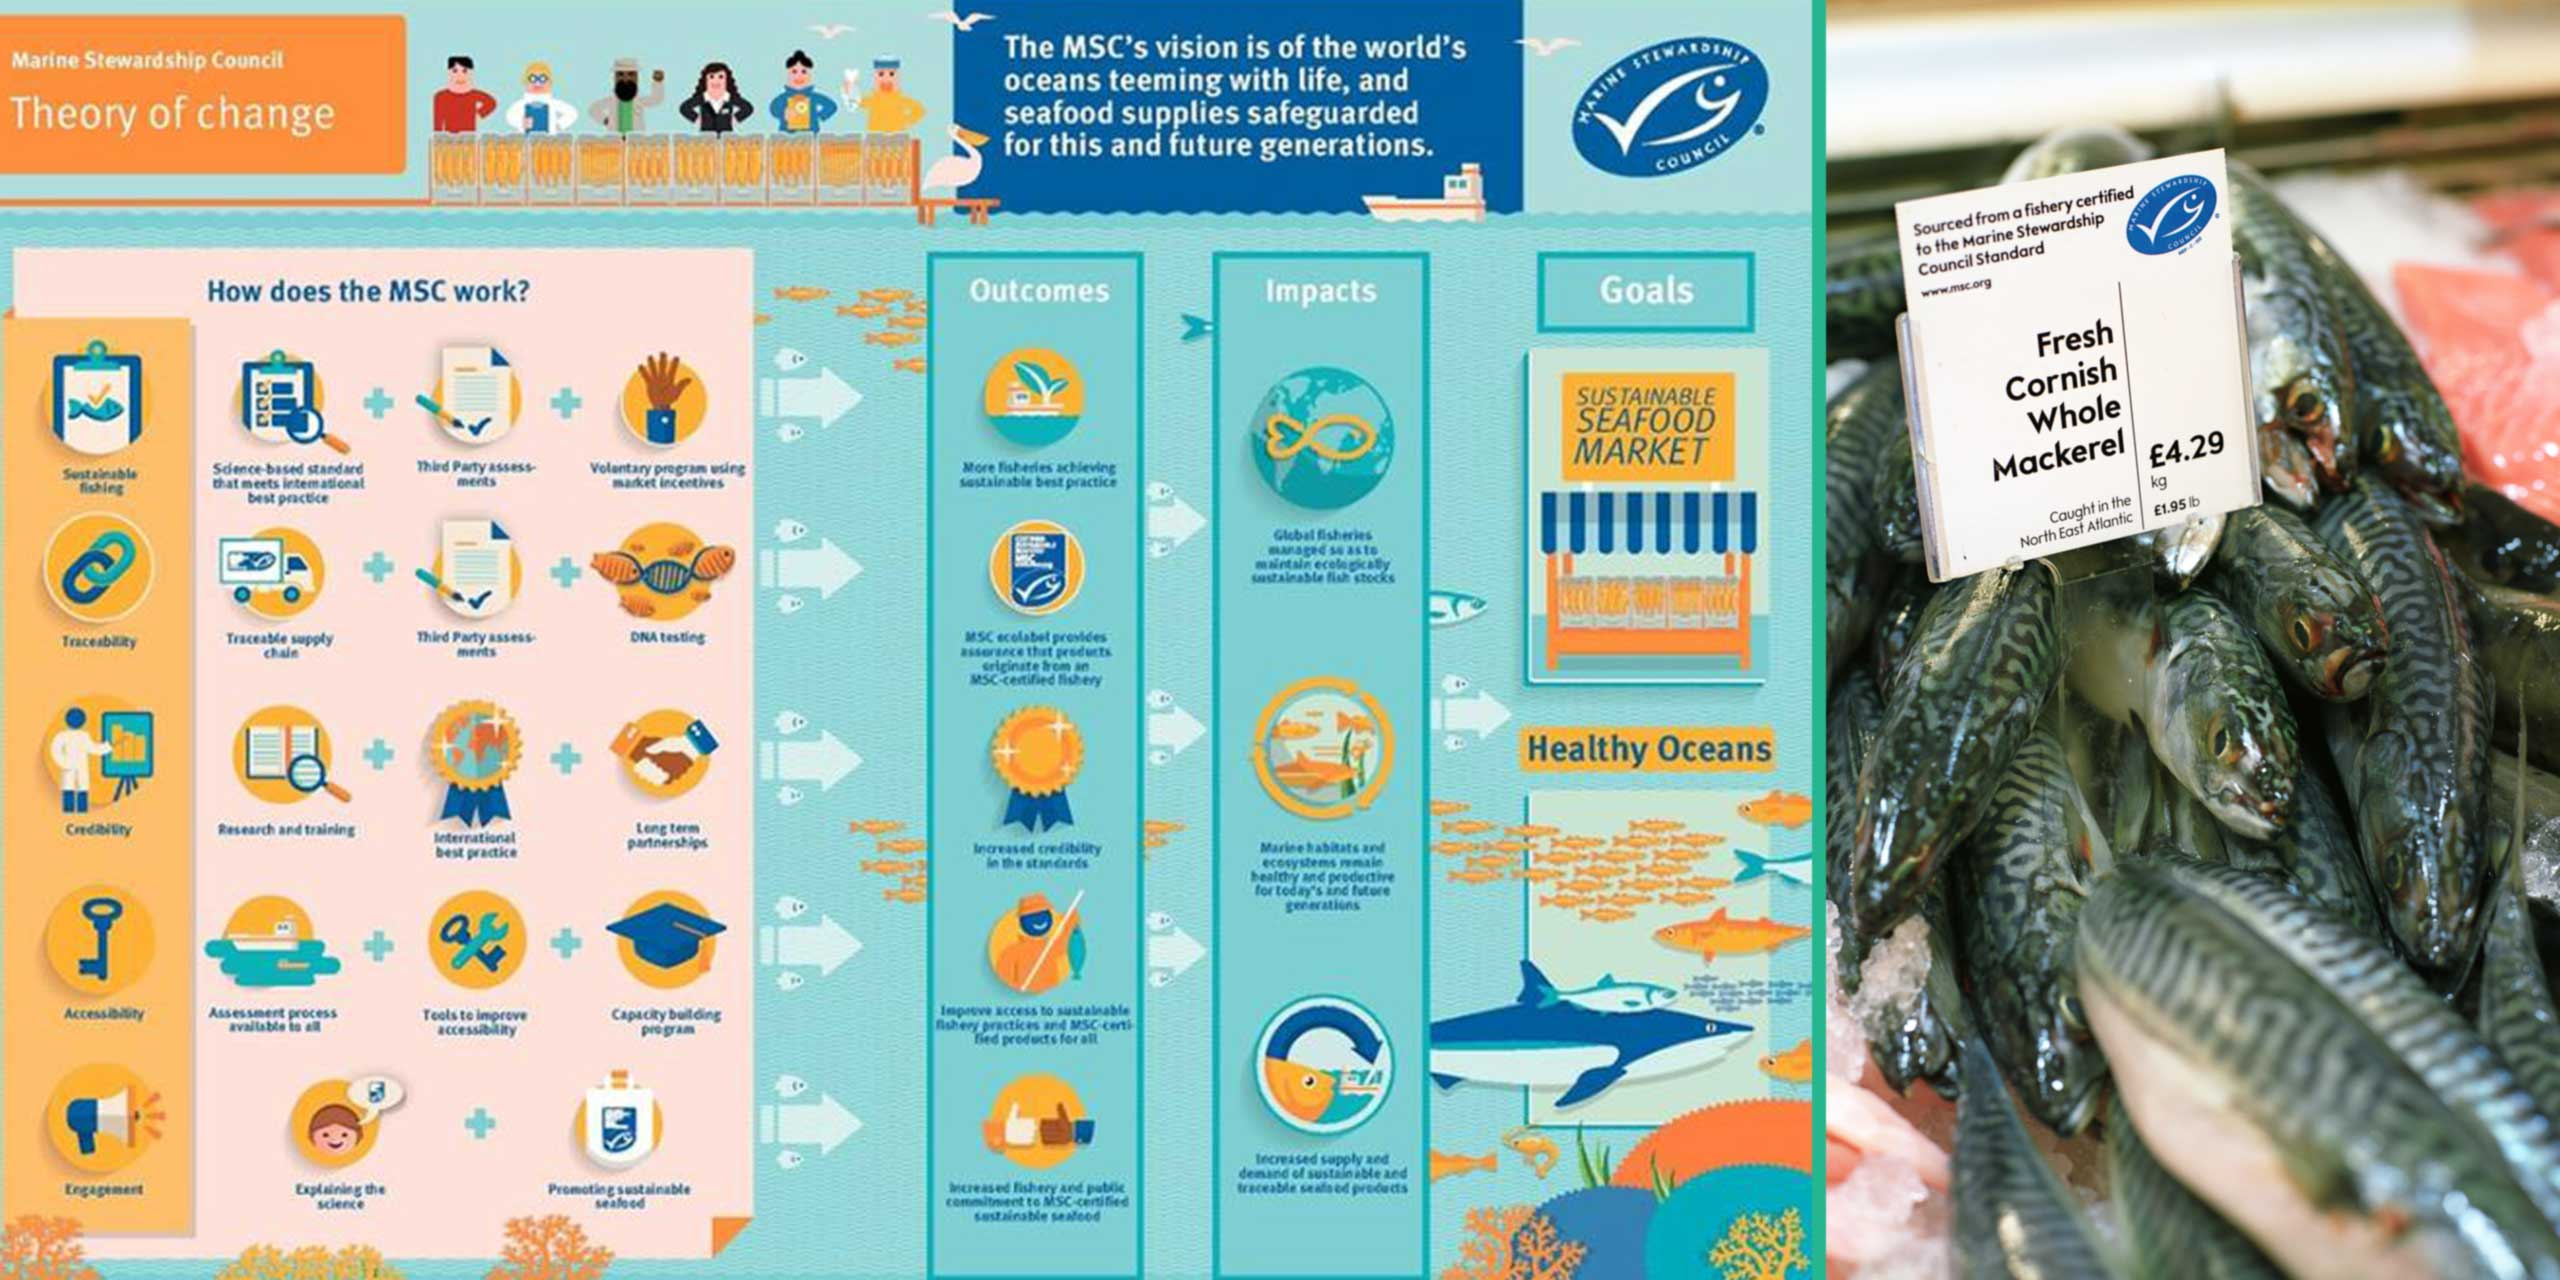 https://s12982.pcdn.co/wp-content/uploads/2014/02/marine-stewardship-council-sl2.jpg